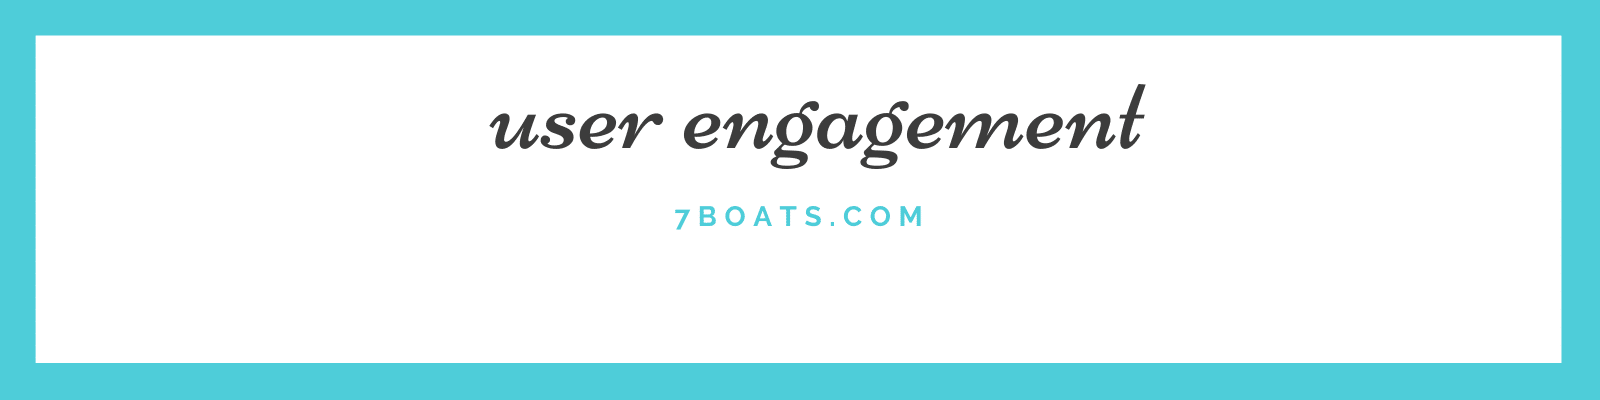 website user engagement tips